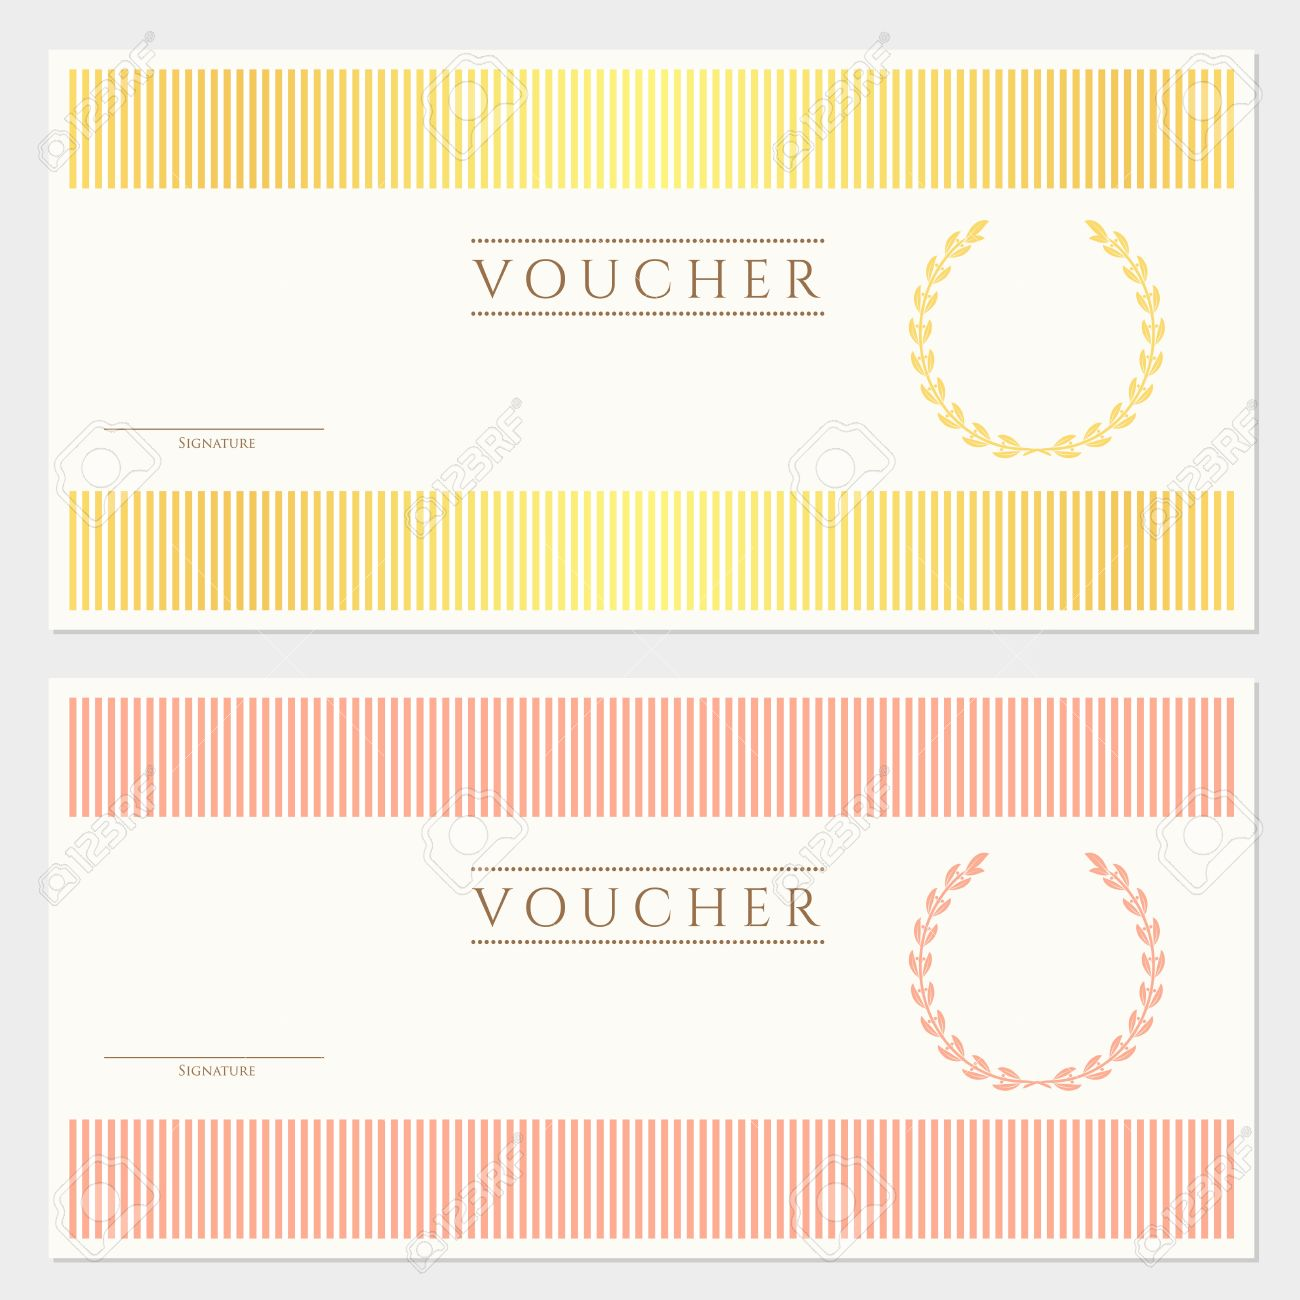 Voucher Gift Certificate Template With Colorful Stripy Pattern – Template for a Voucher